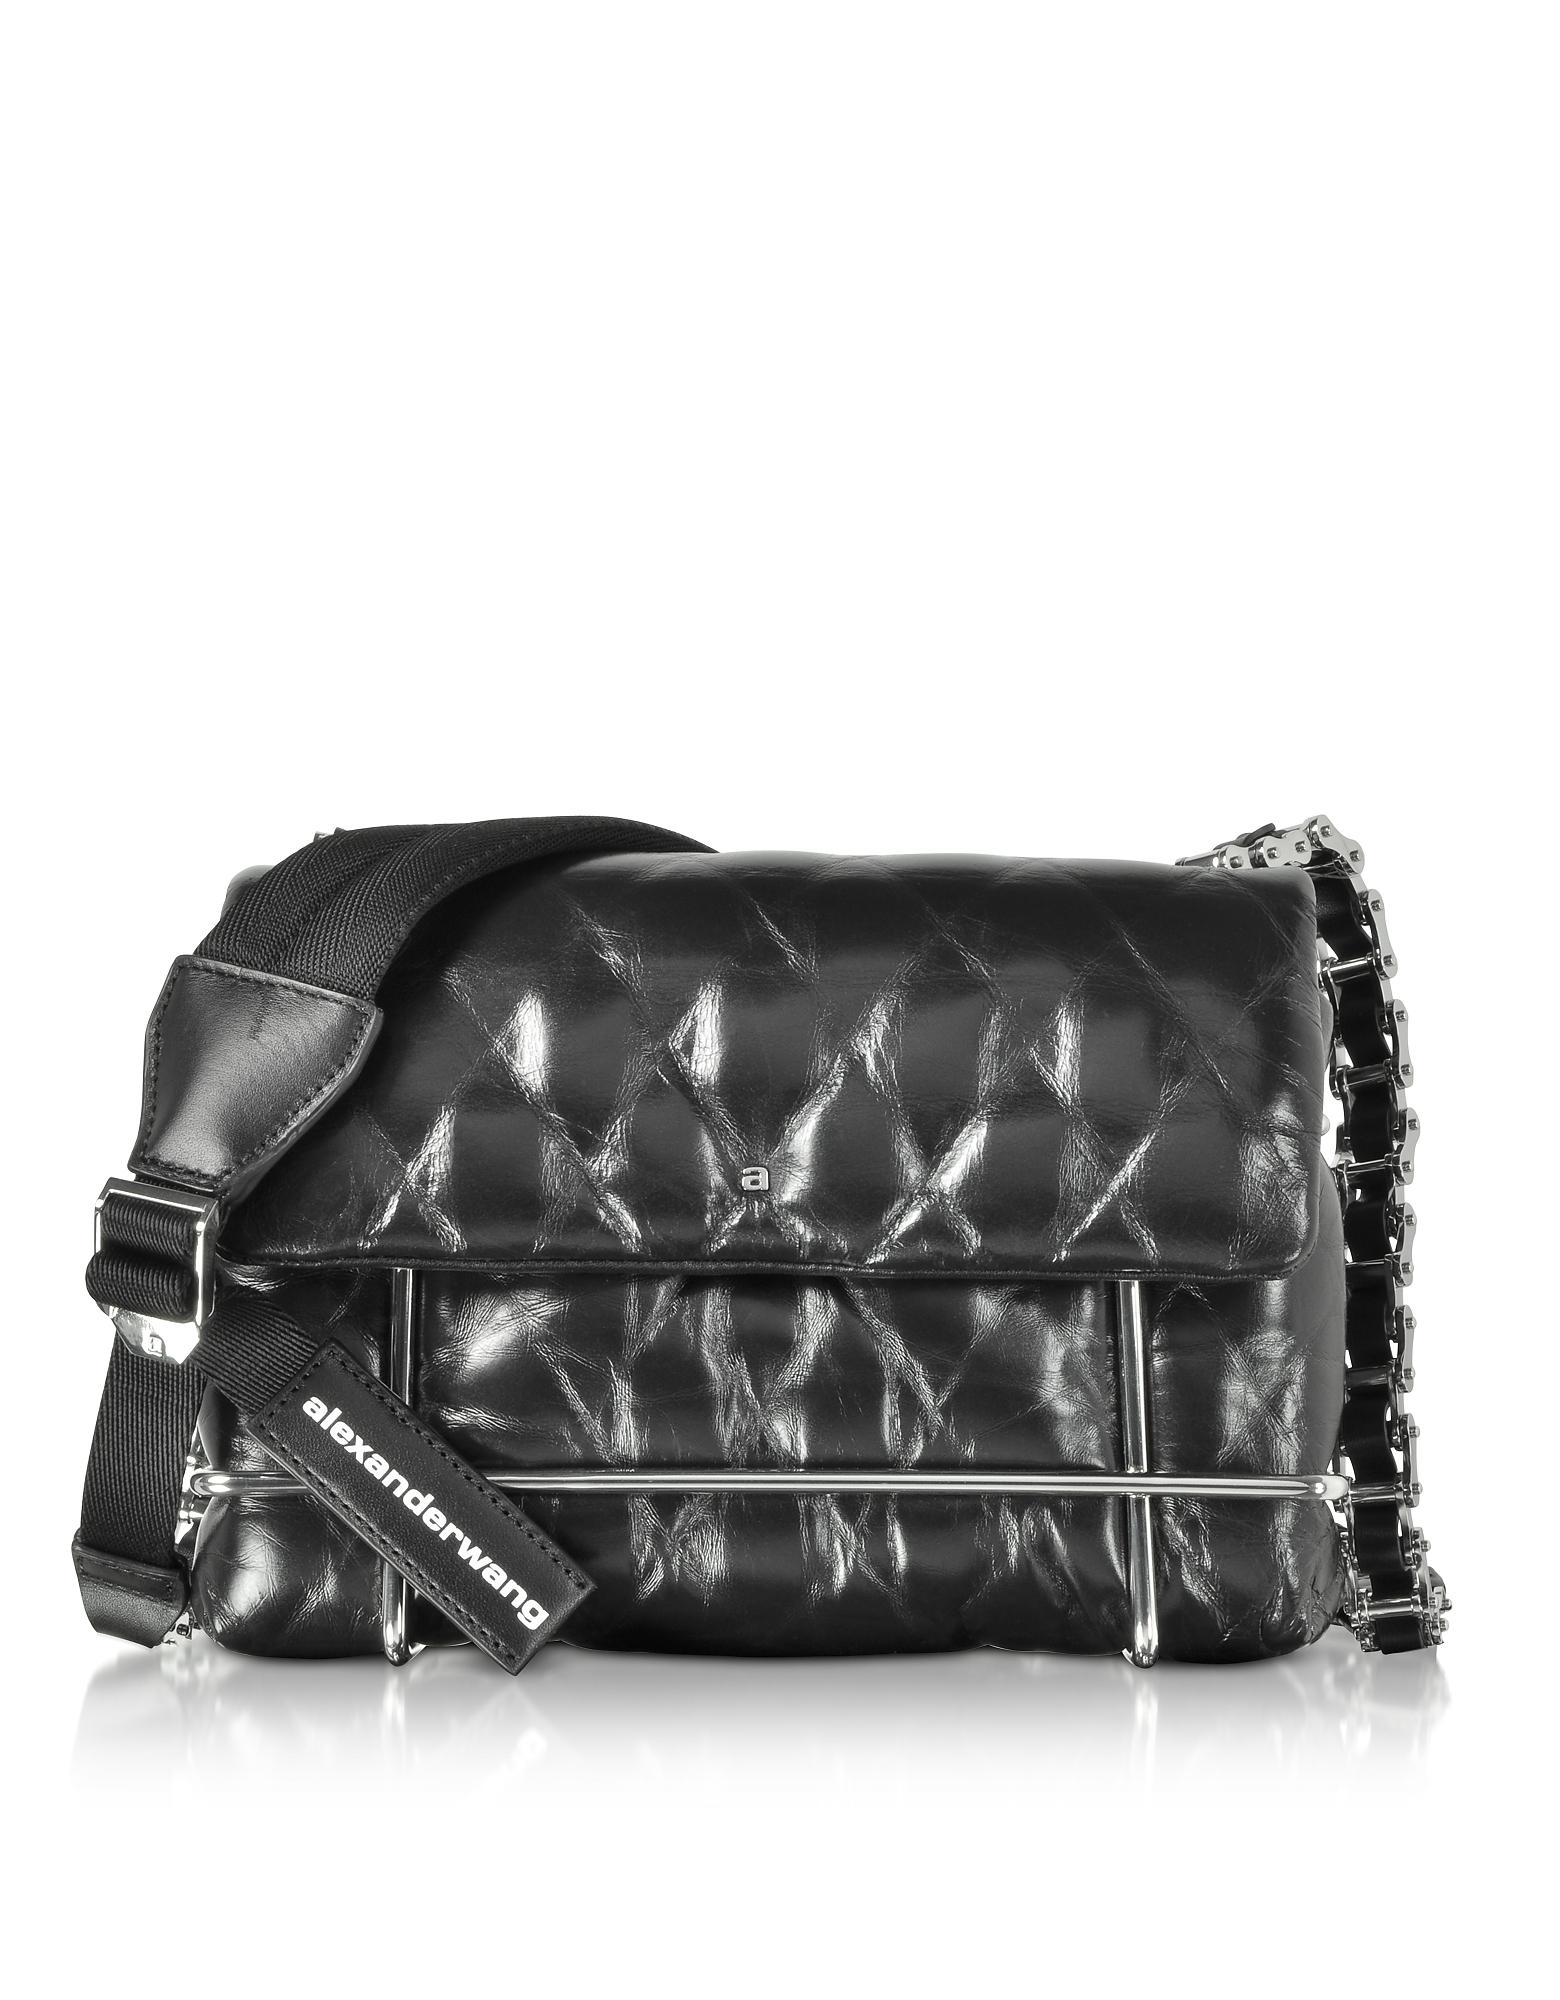 ee2e8f5c5bca Lyst Alexander Halo Black Quilted Leather Shoulder Bag In. Chanel Caviar  Chain ...